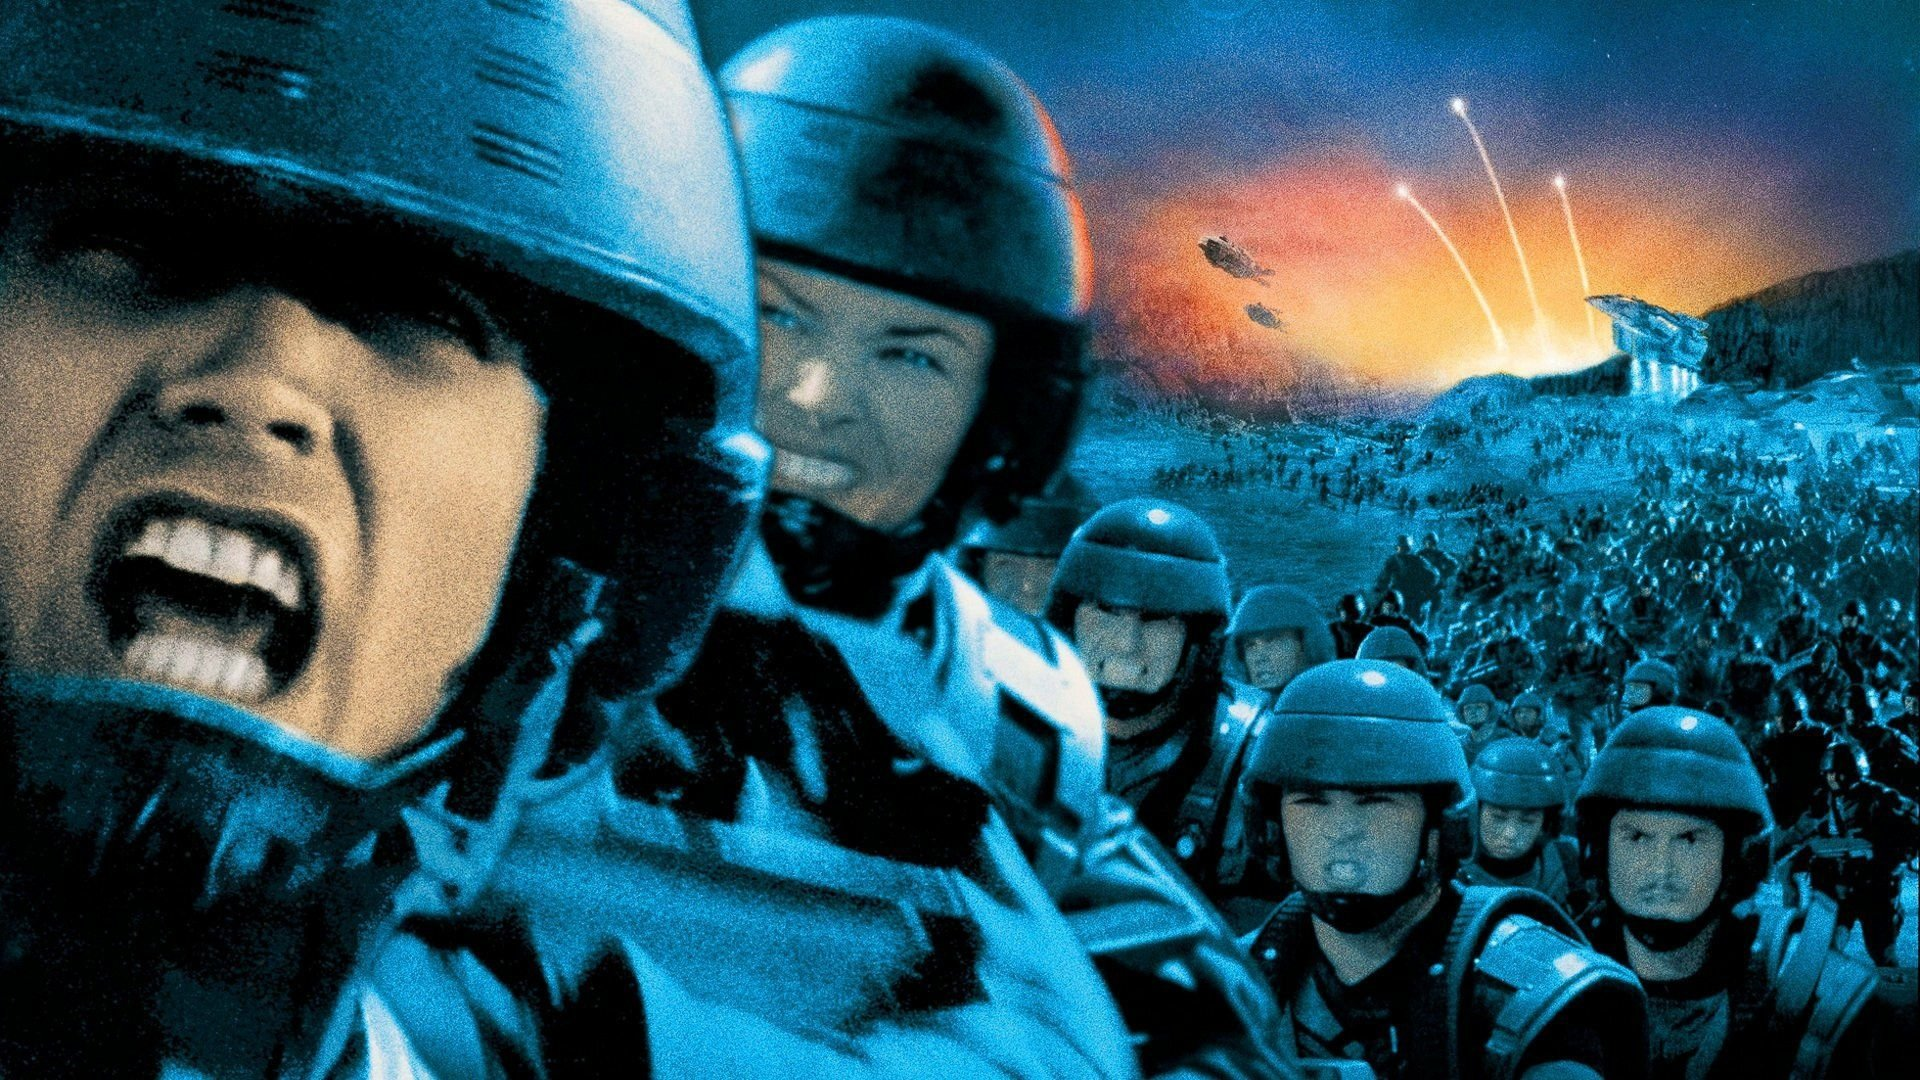 Starship Troopers: Why Everyone Hated It In 1997 And Why It's Beloved Now